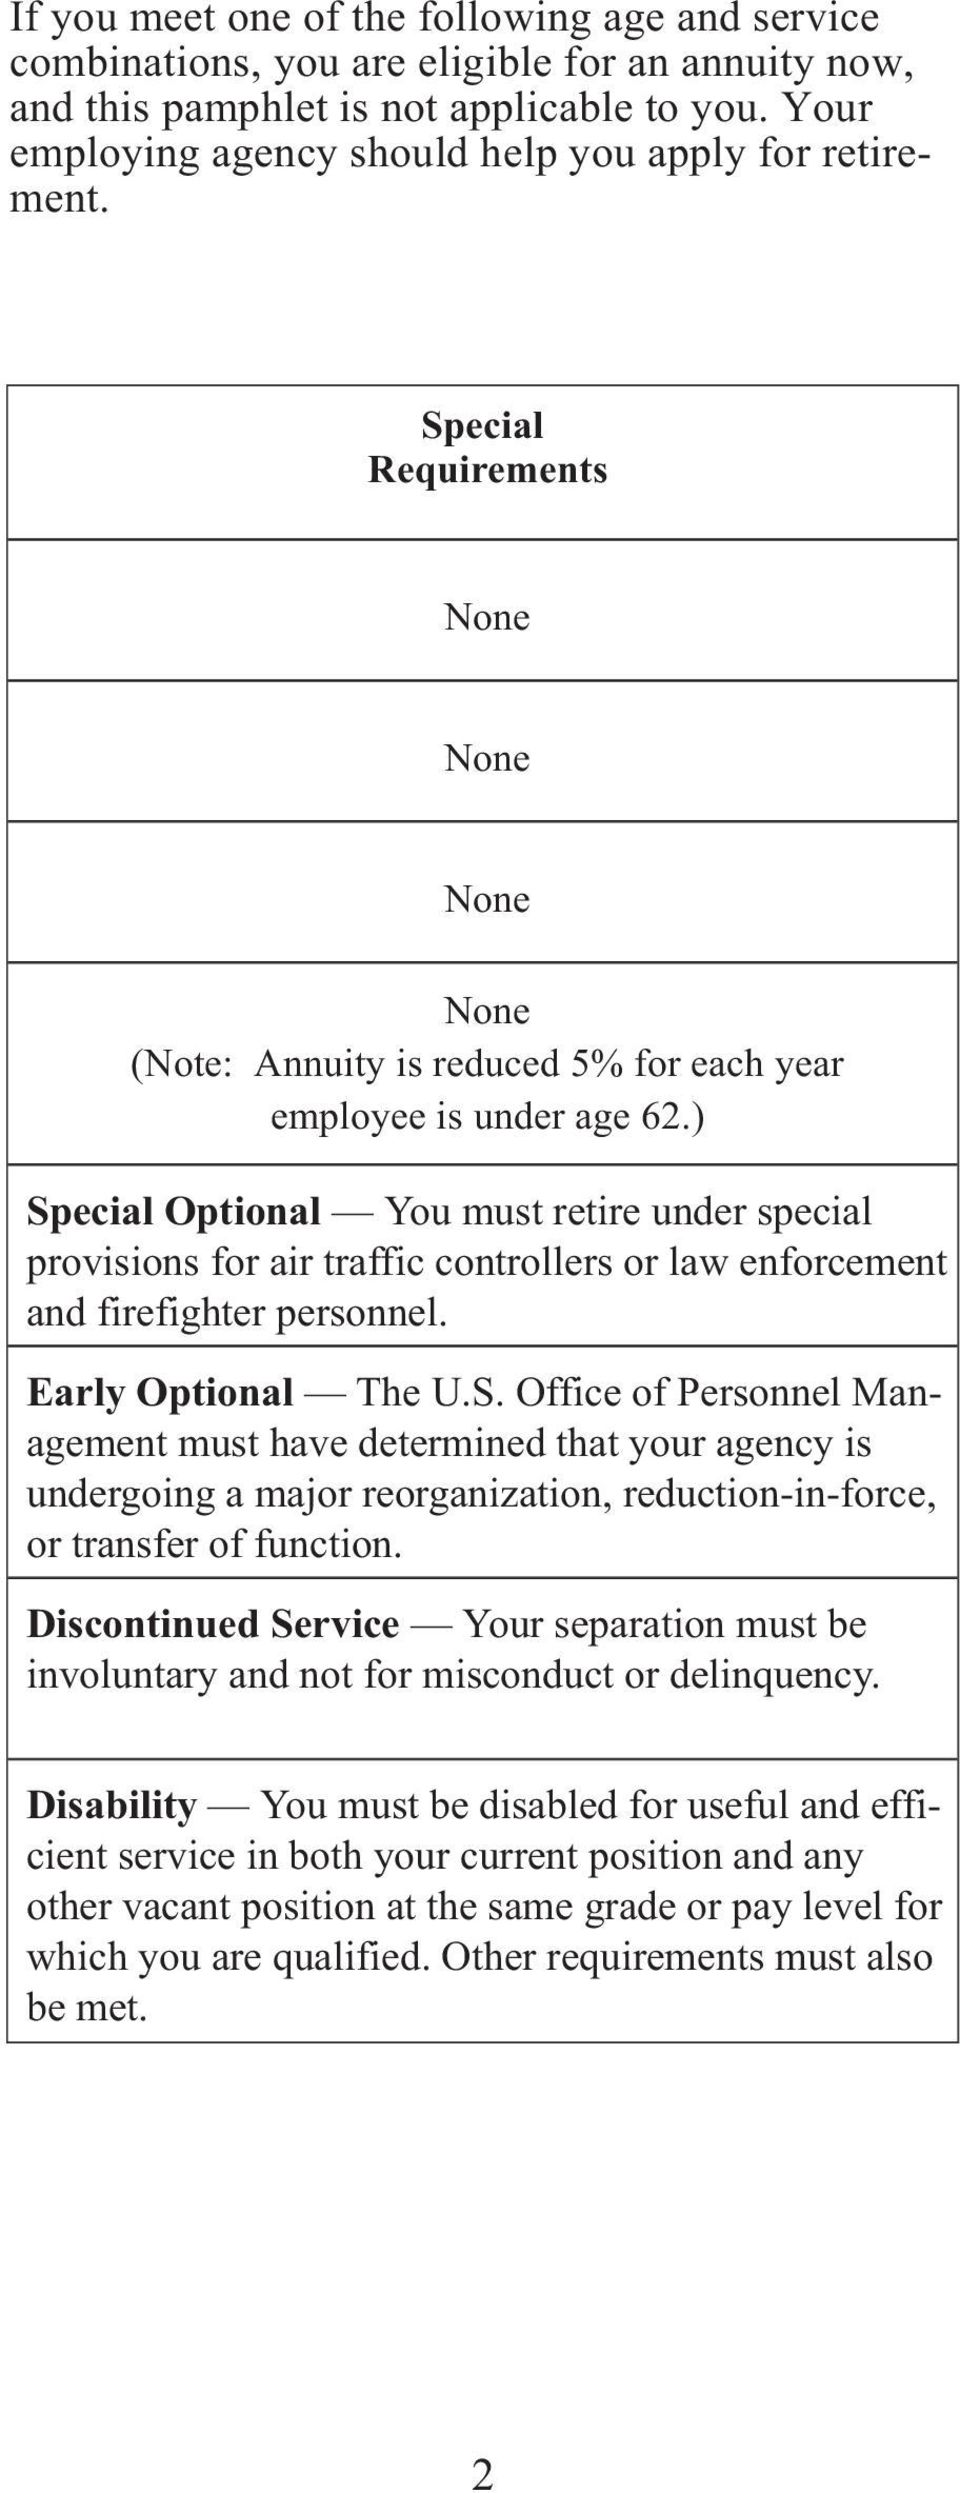 ) Special Optional You must retire under special provisions for air traffic controllers or law enforcement and firefighter personnel. Early Optional The U.S. Office of Personnel Management must have determined that your agency is undergoing a major reorganization, reduction-in-force, or transfer of function.